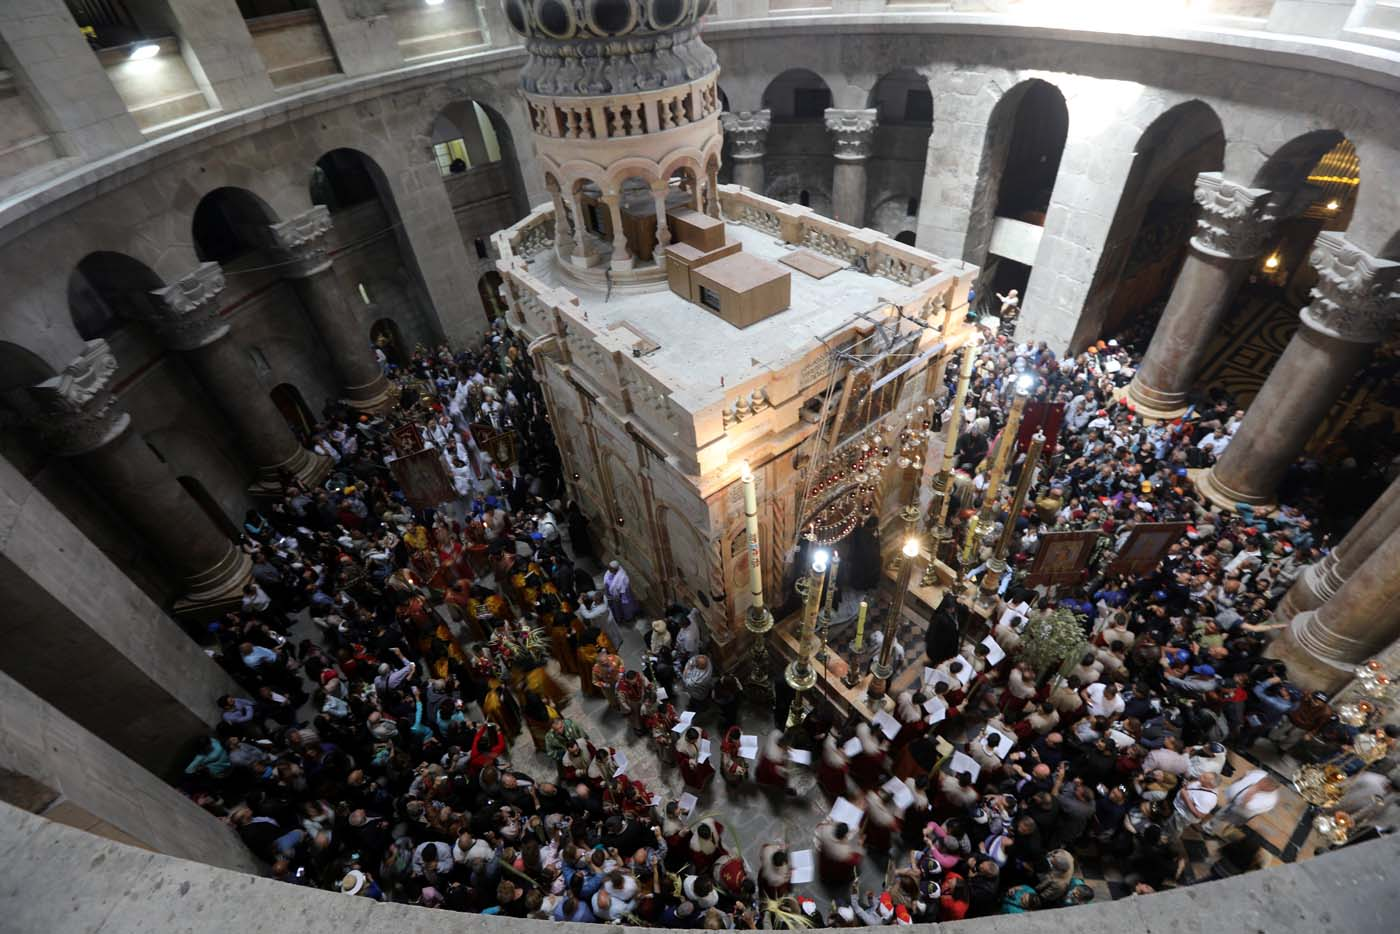 A general view shows a Palm Sunday ceremony in the Church of the Holy Sepulchre in Jerusalem's Old City April 9, 2017. REUTERS/Ammar Awad